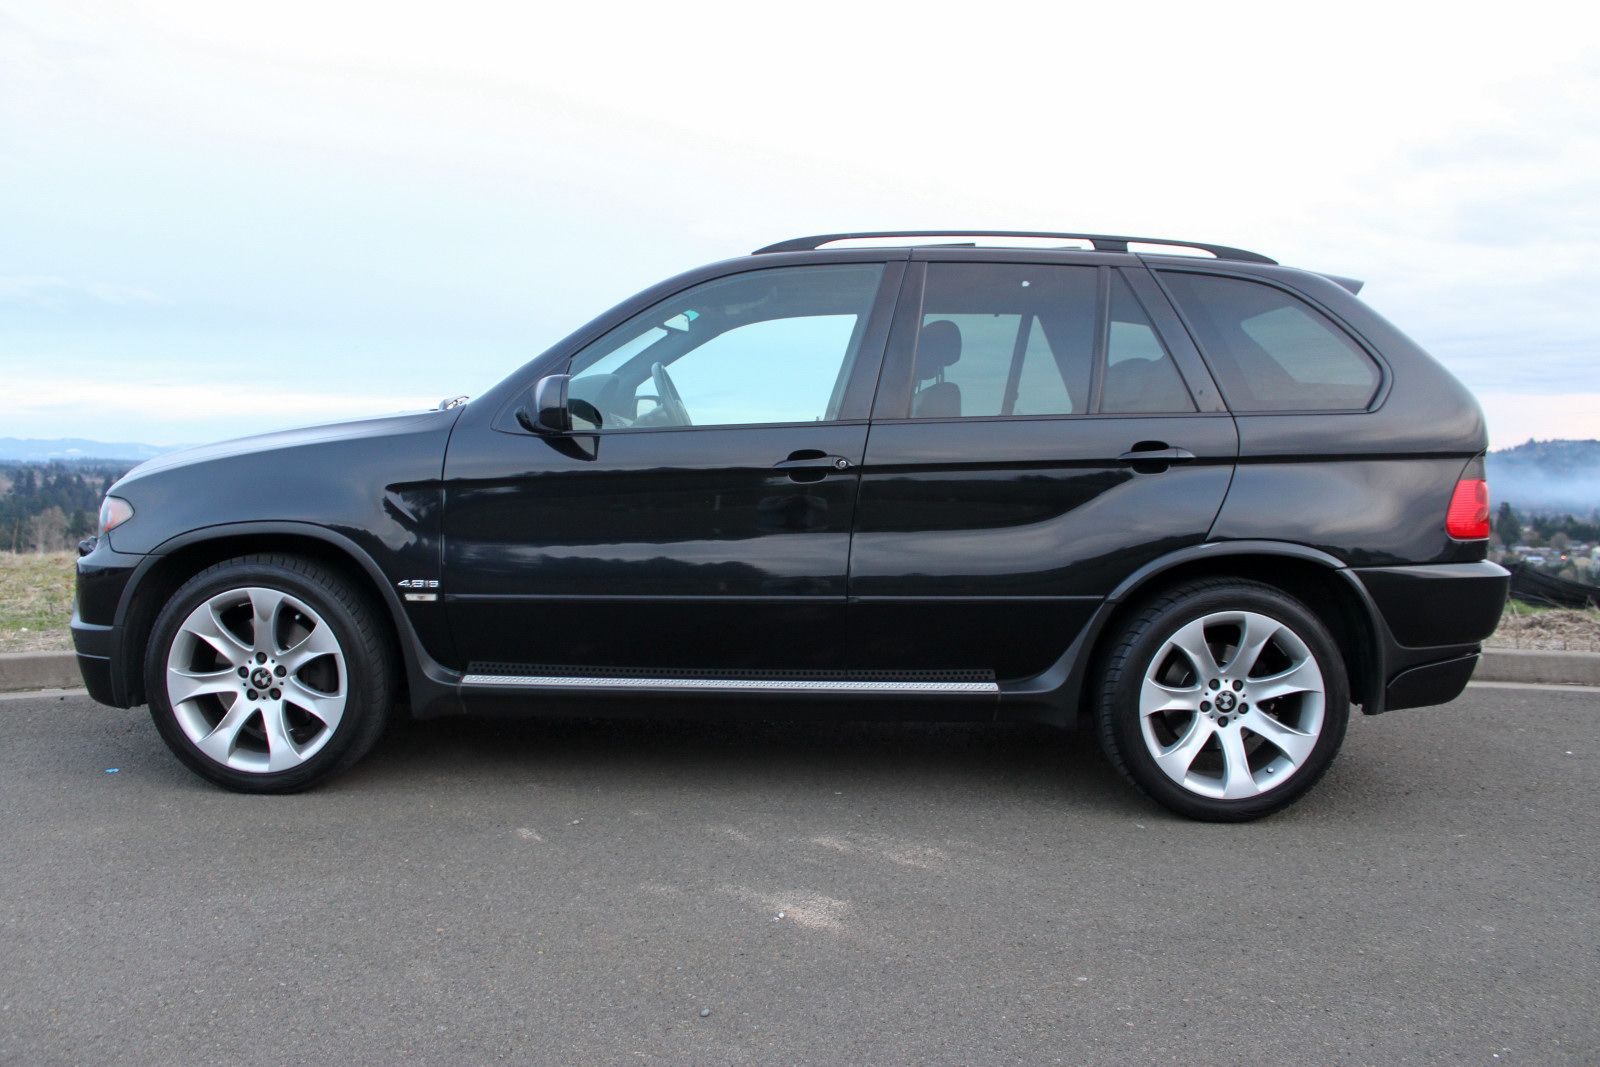 2005 bmw x5 bmw x5 m pinterest bmw x5 bmw and bmw x5 e53. Black Bedroom Furniture Sets. Home Design Ideas